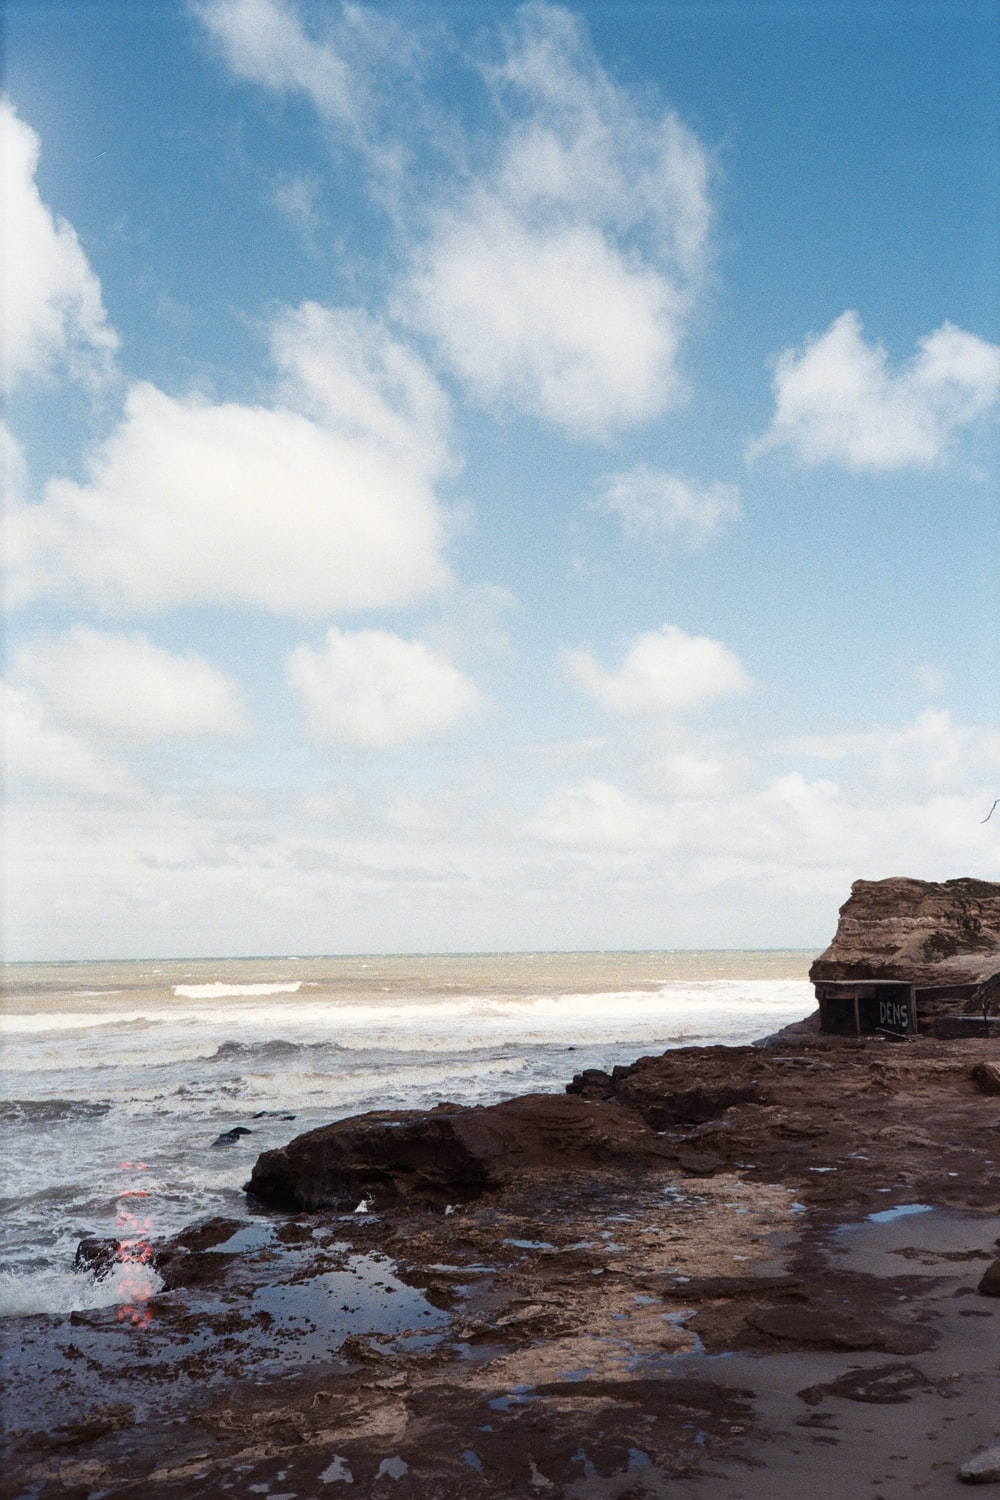 brown rock formation on sea shore under blue sky during daytime